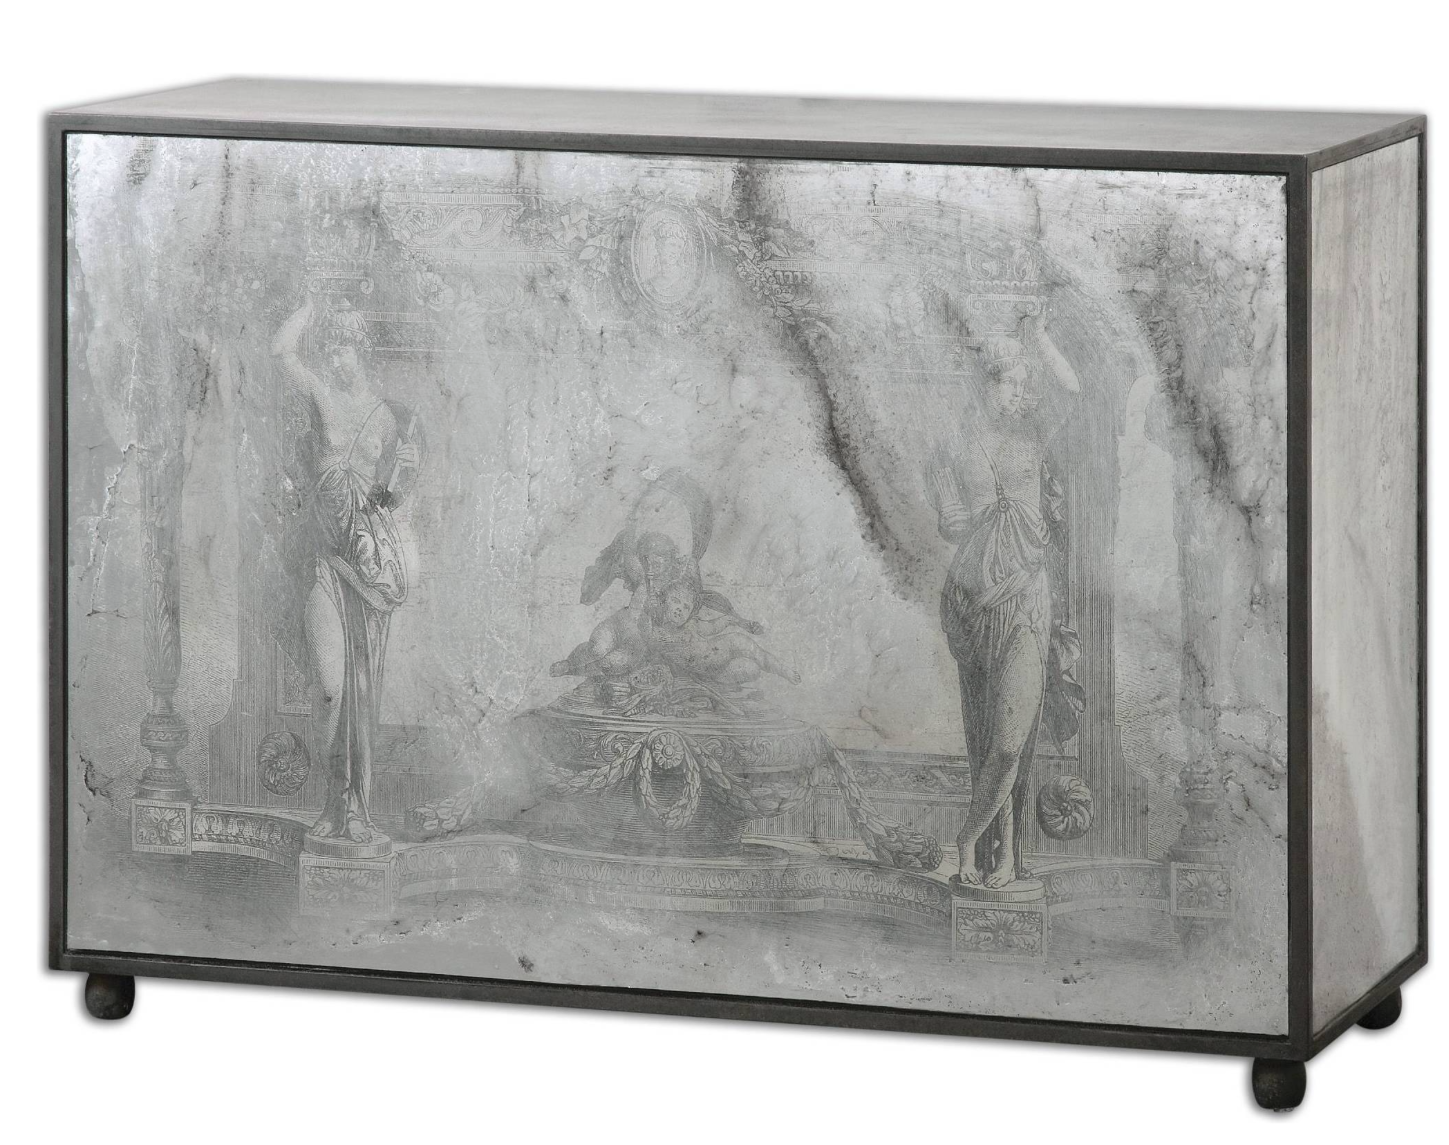 Uttermost antheia mirrored console table mdffirglass ancient uttermost antheia mirrored console table mdffirglass ancient stone scenery is geotapseo Choice Image